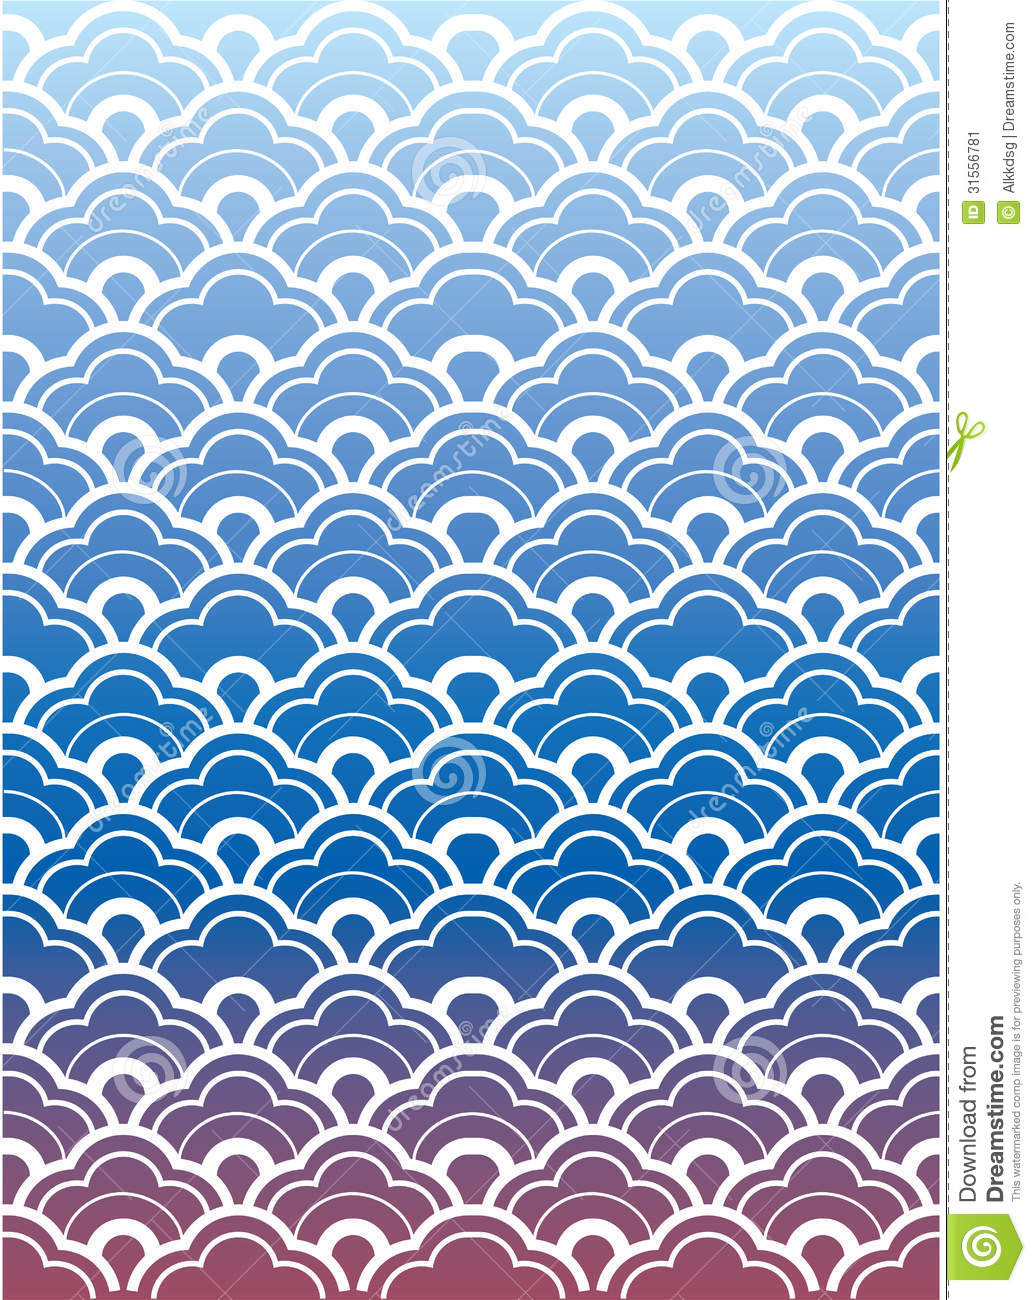 Japanese Wave Wallpaper Stock Vector Illustration Of Nature